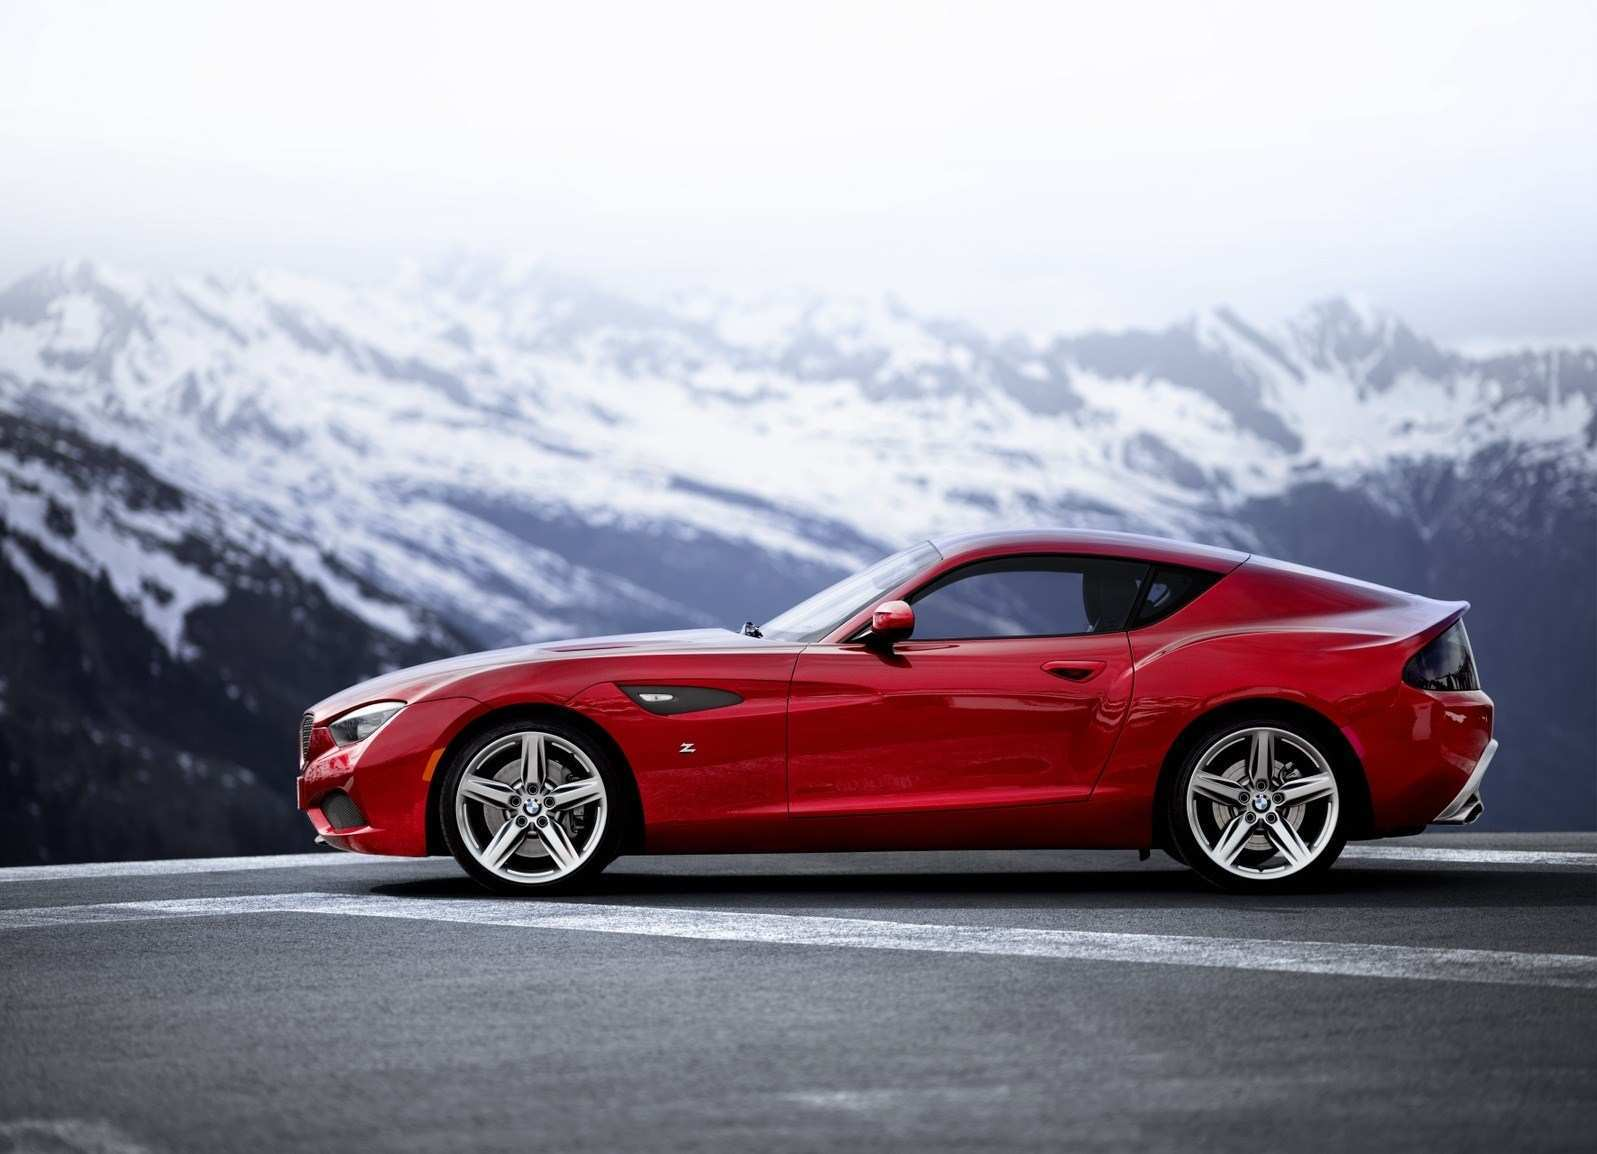 99 The Best 2020 BMW Z4 M Roadster Concept And Review